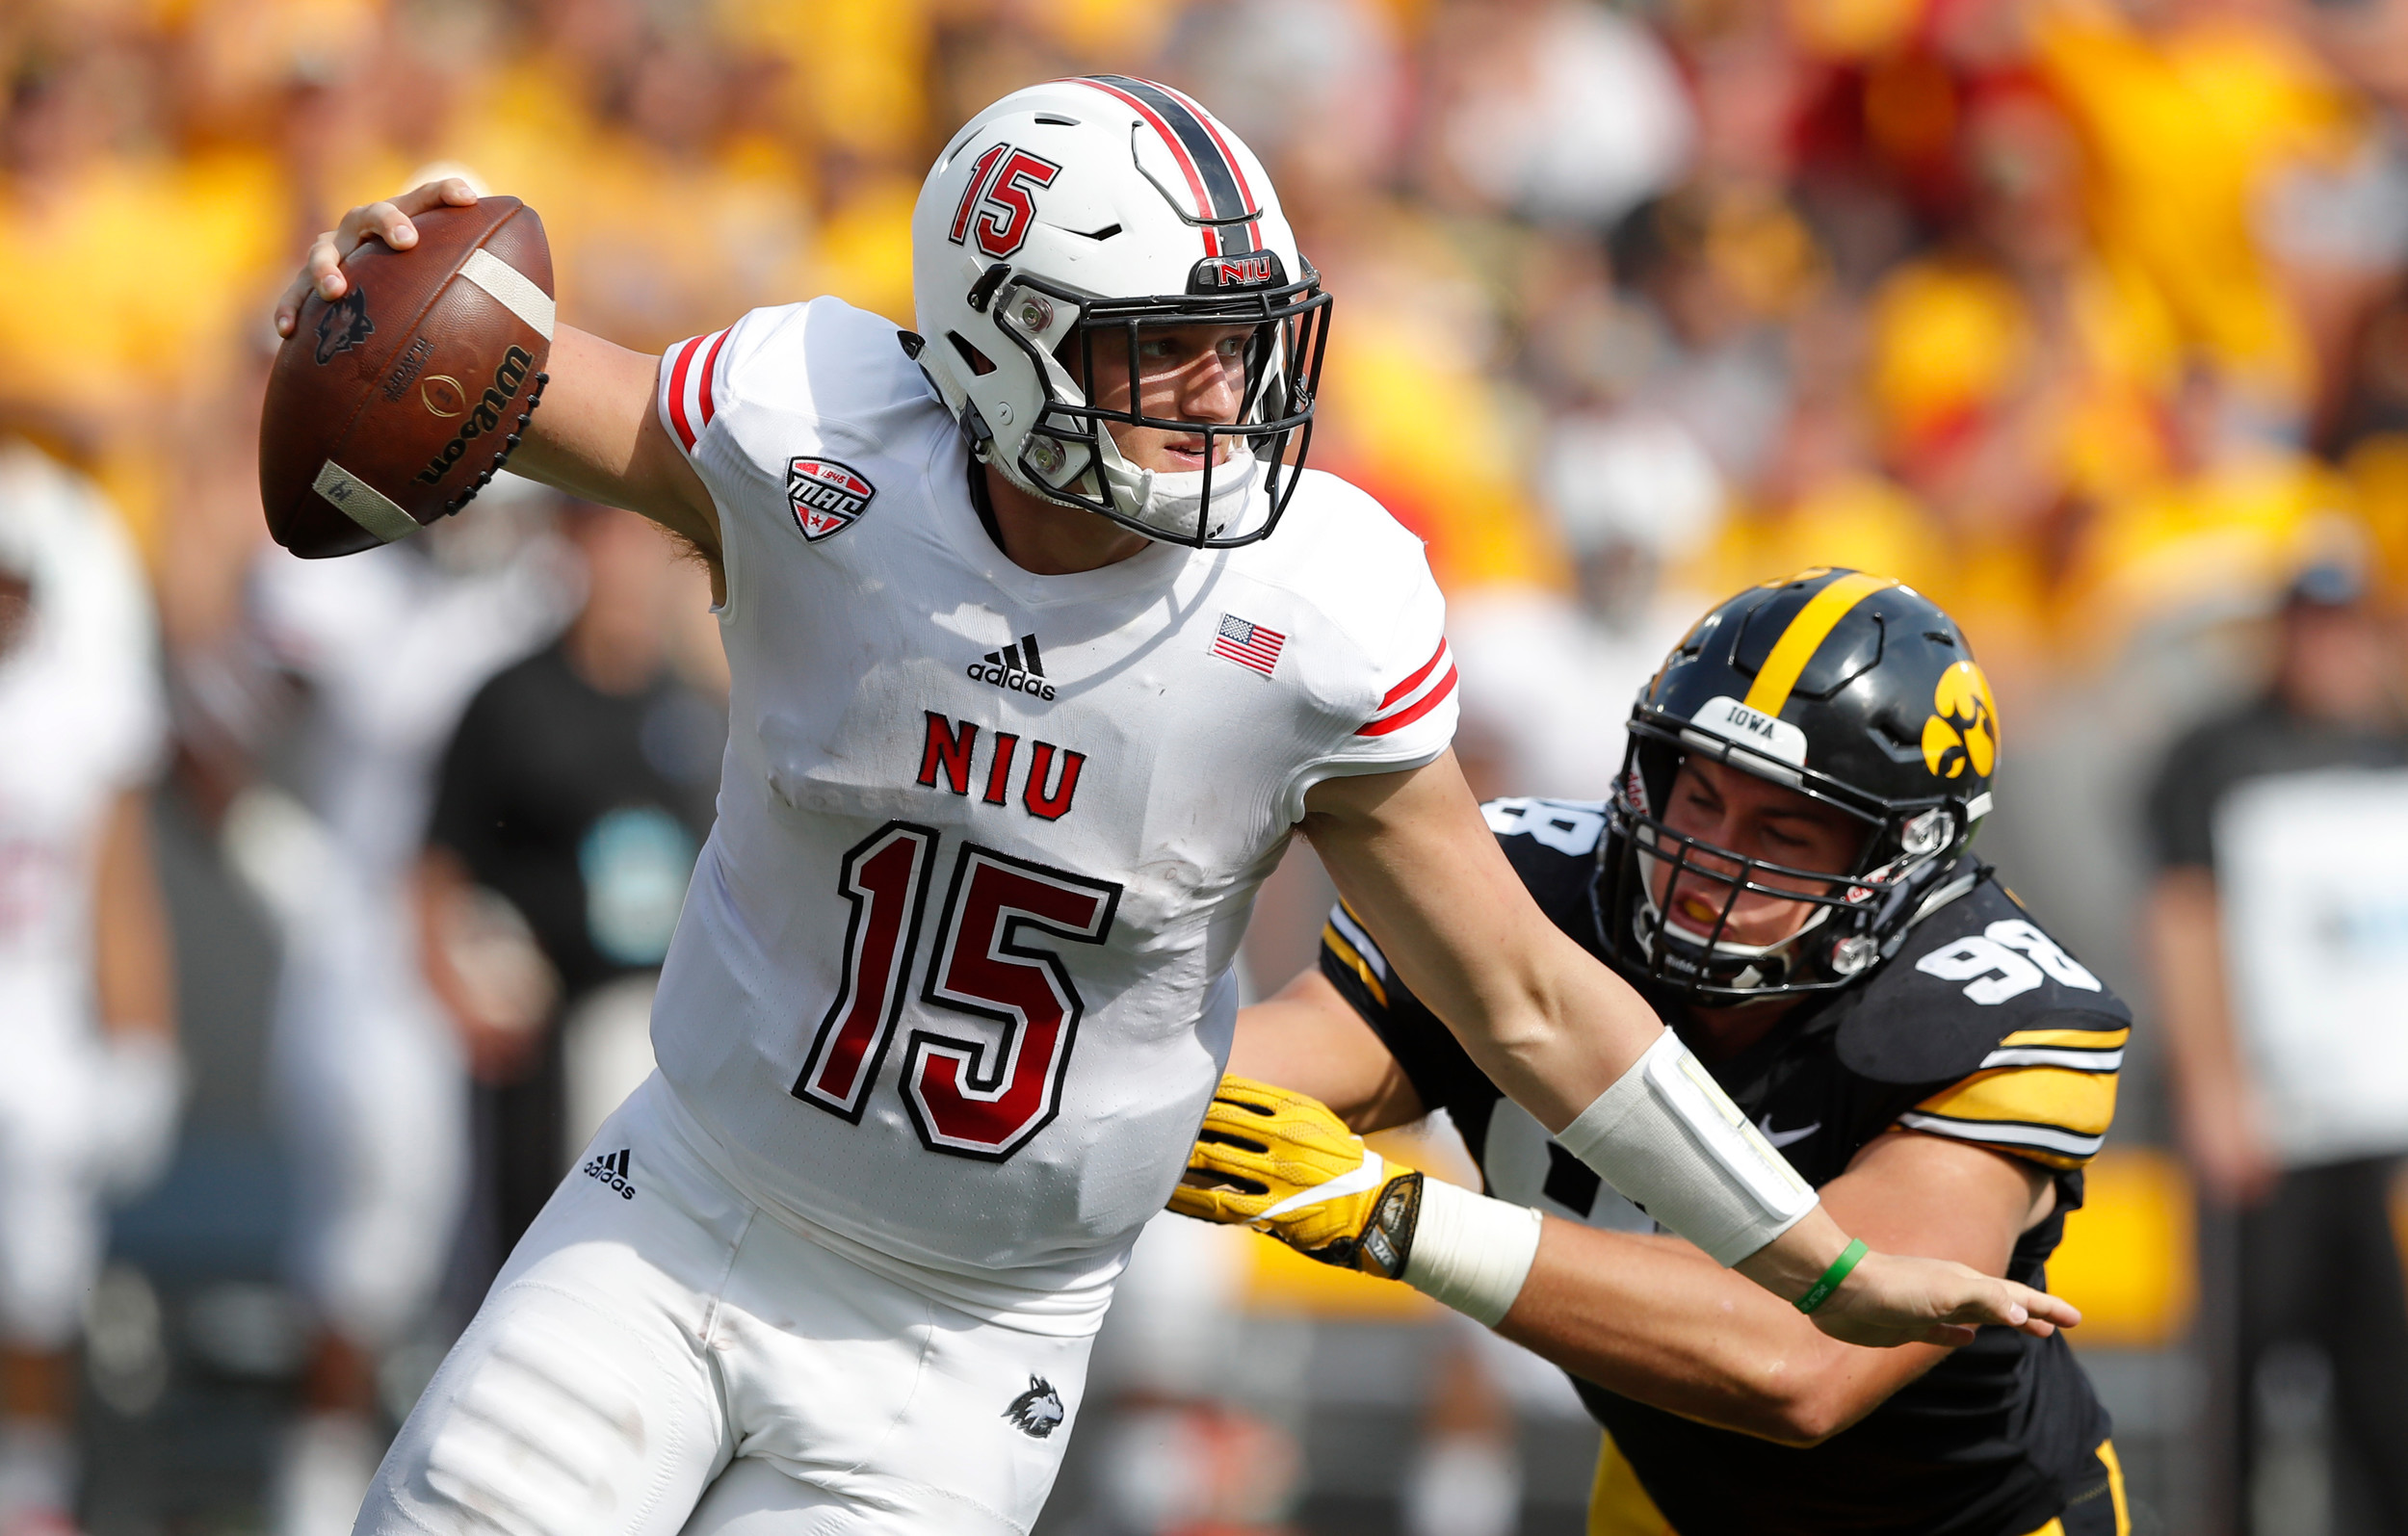 Northern Illinois quarterback Marcus Childers looks to avoid the pass rush of Iowa during Saturday's game in Iowa City. Childers, an Adairsville High graduate, completed 14 of 25 passes in a 33-7 loss.